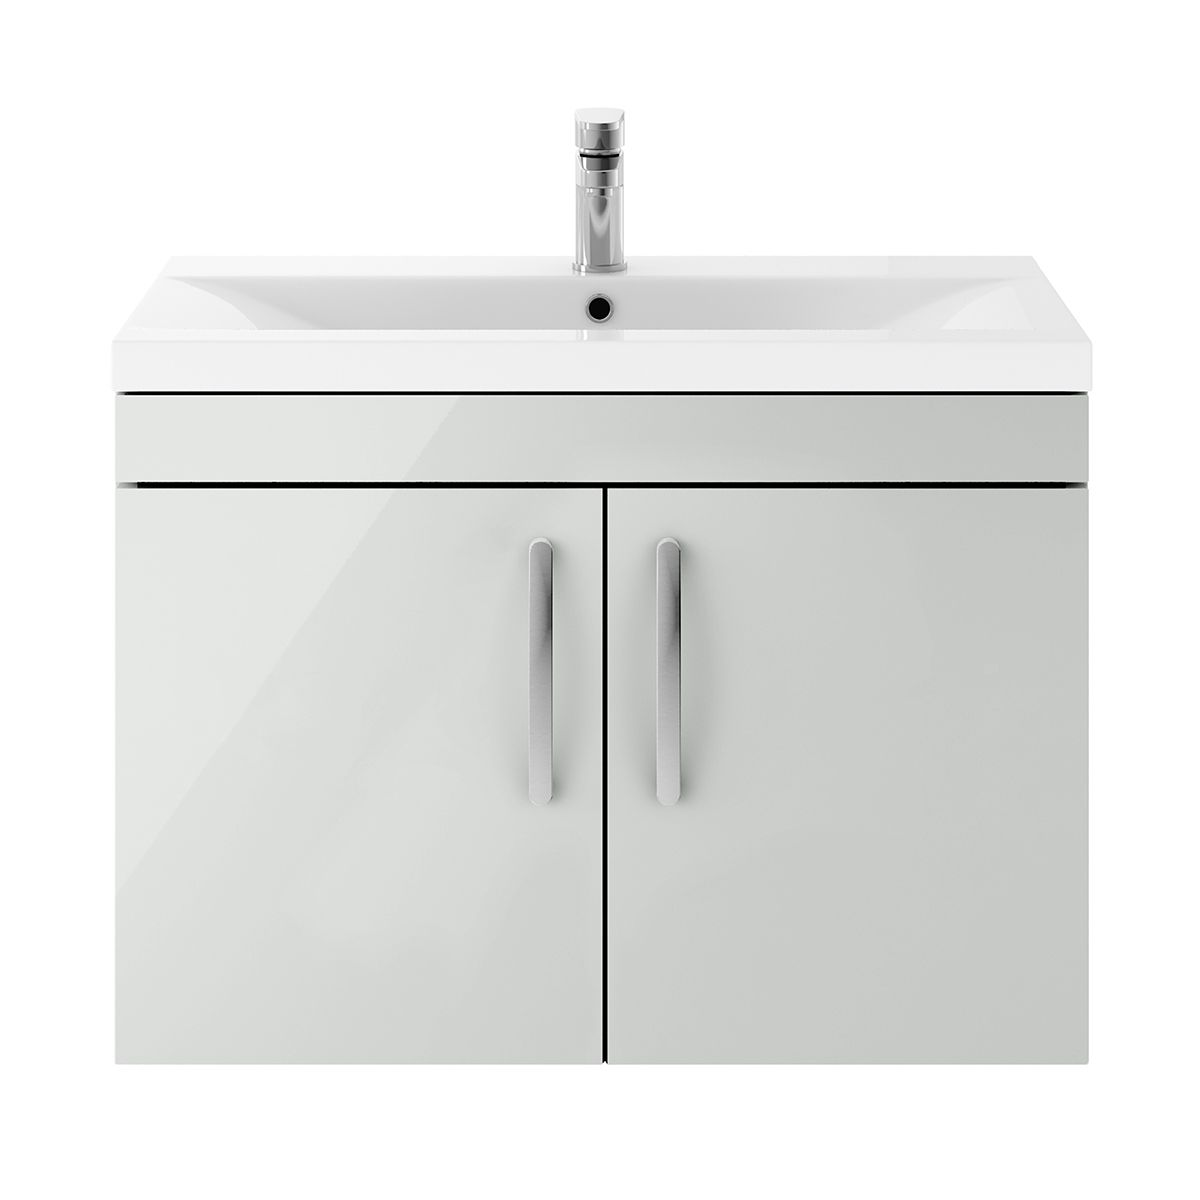 Nuie Athena Gloss Grey Mist 2 Door Wall Hung Unit 800mm with Mid Edge Basin